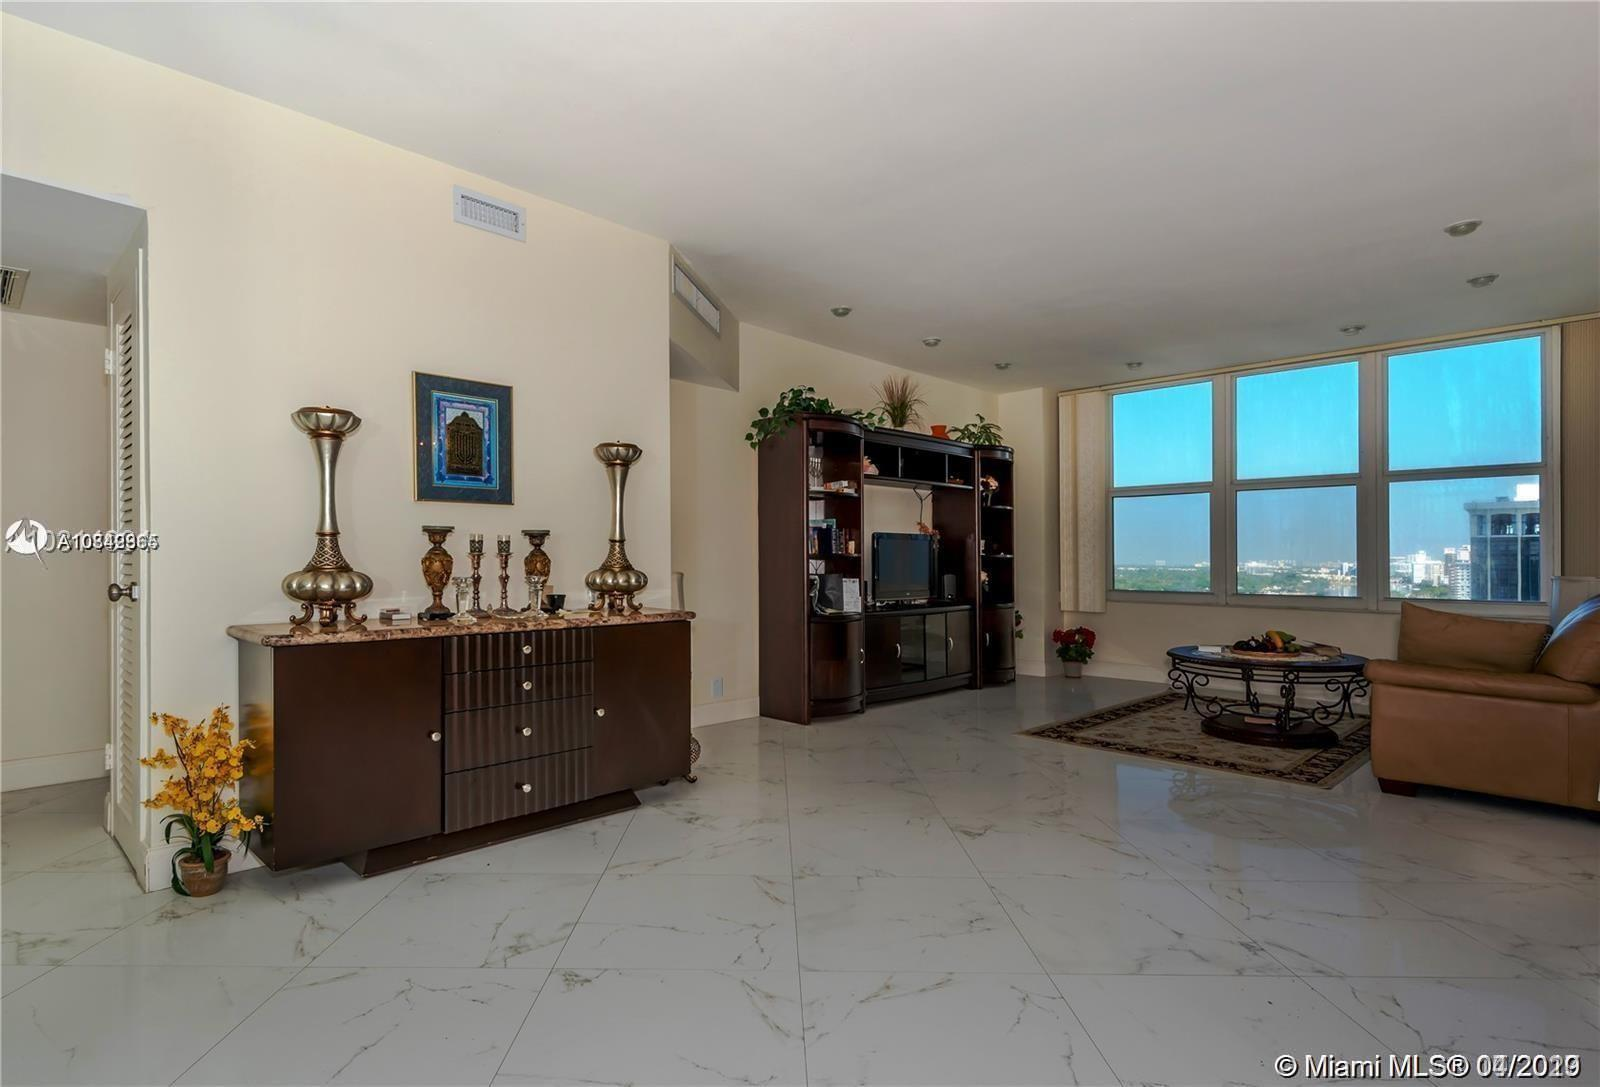 Oceanfront condo located in Prime Miami Beach Location. This unit offers 1 bedroom, 1 bathroom with